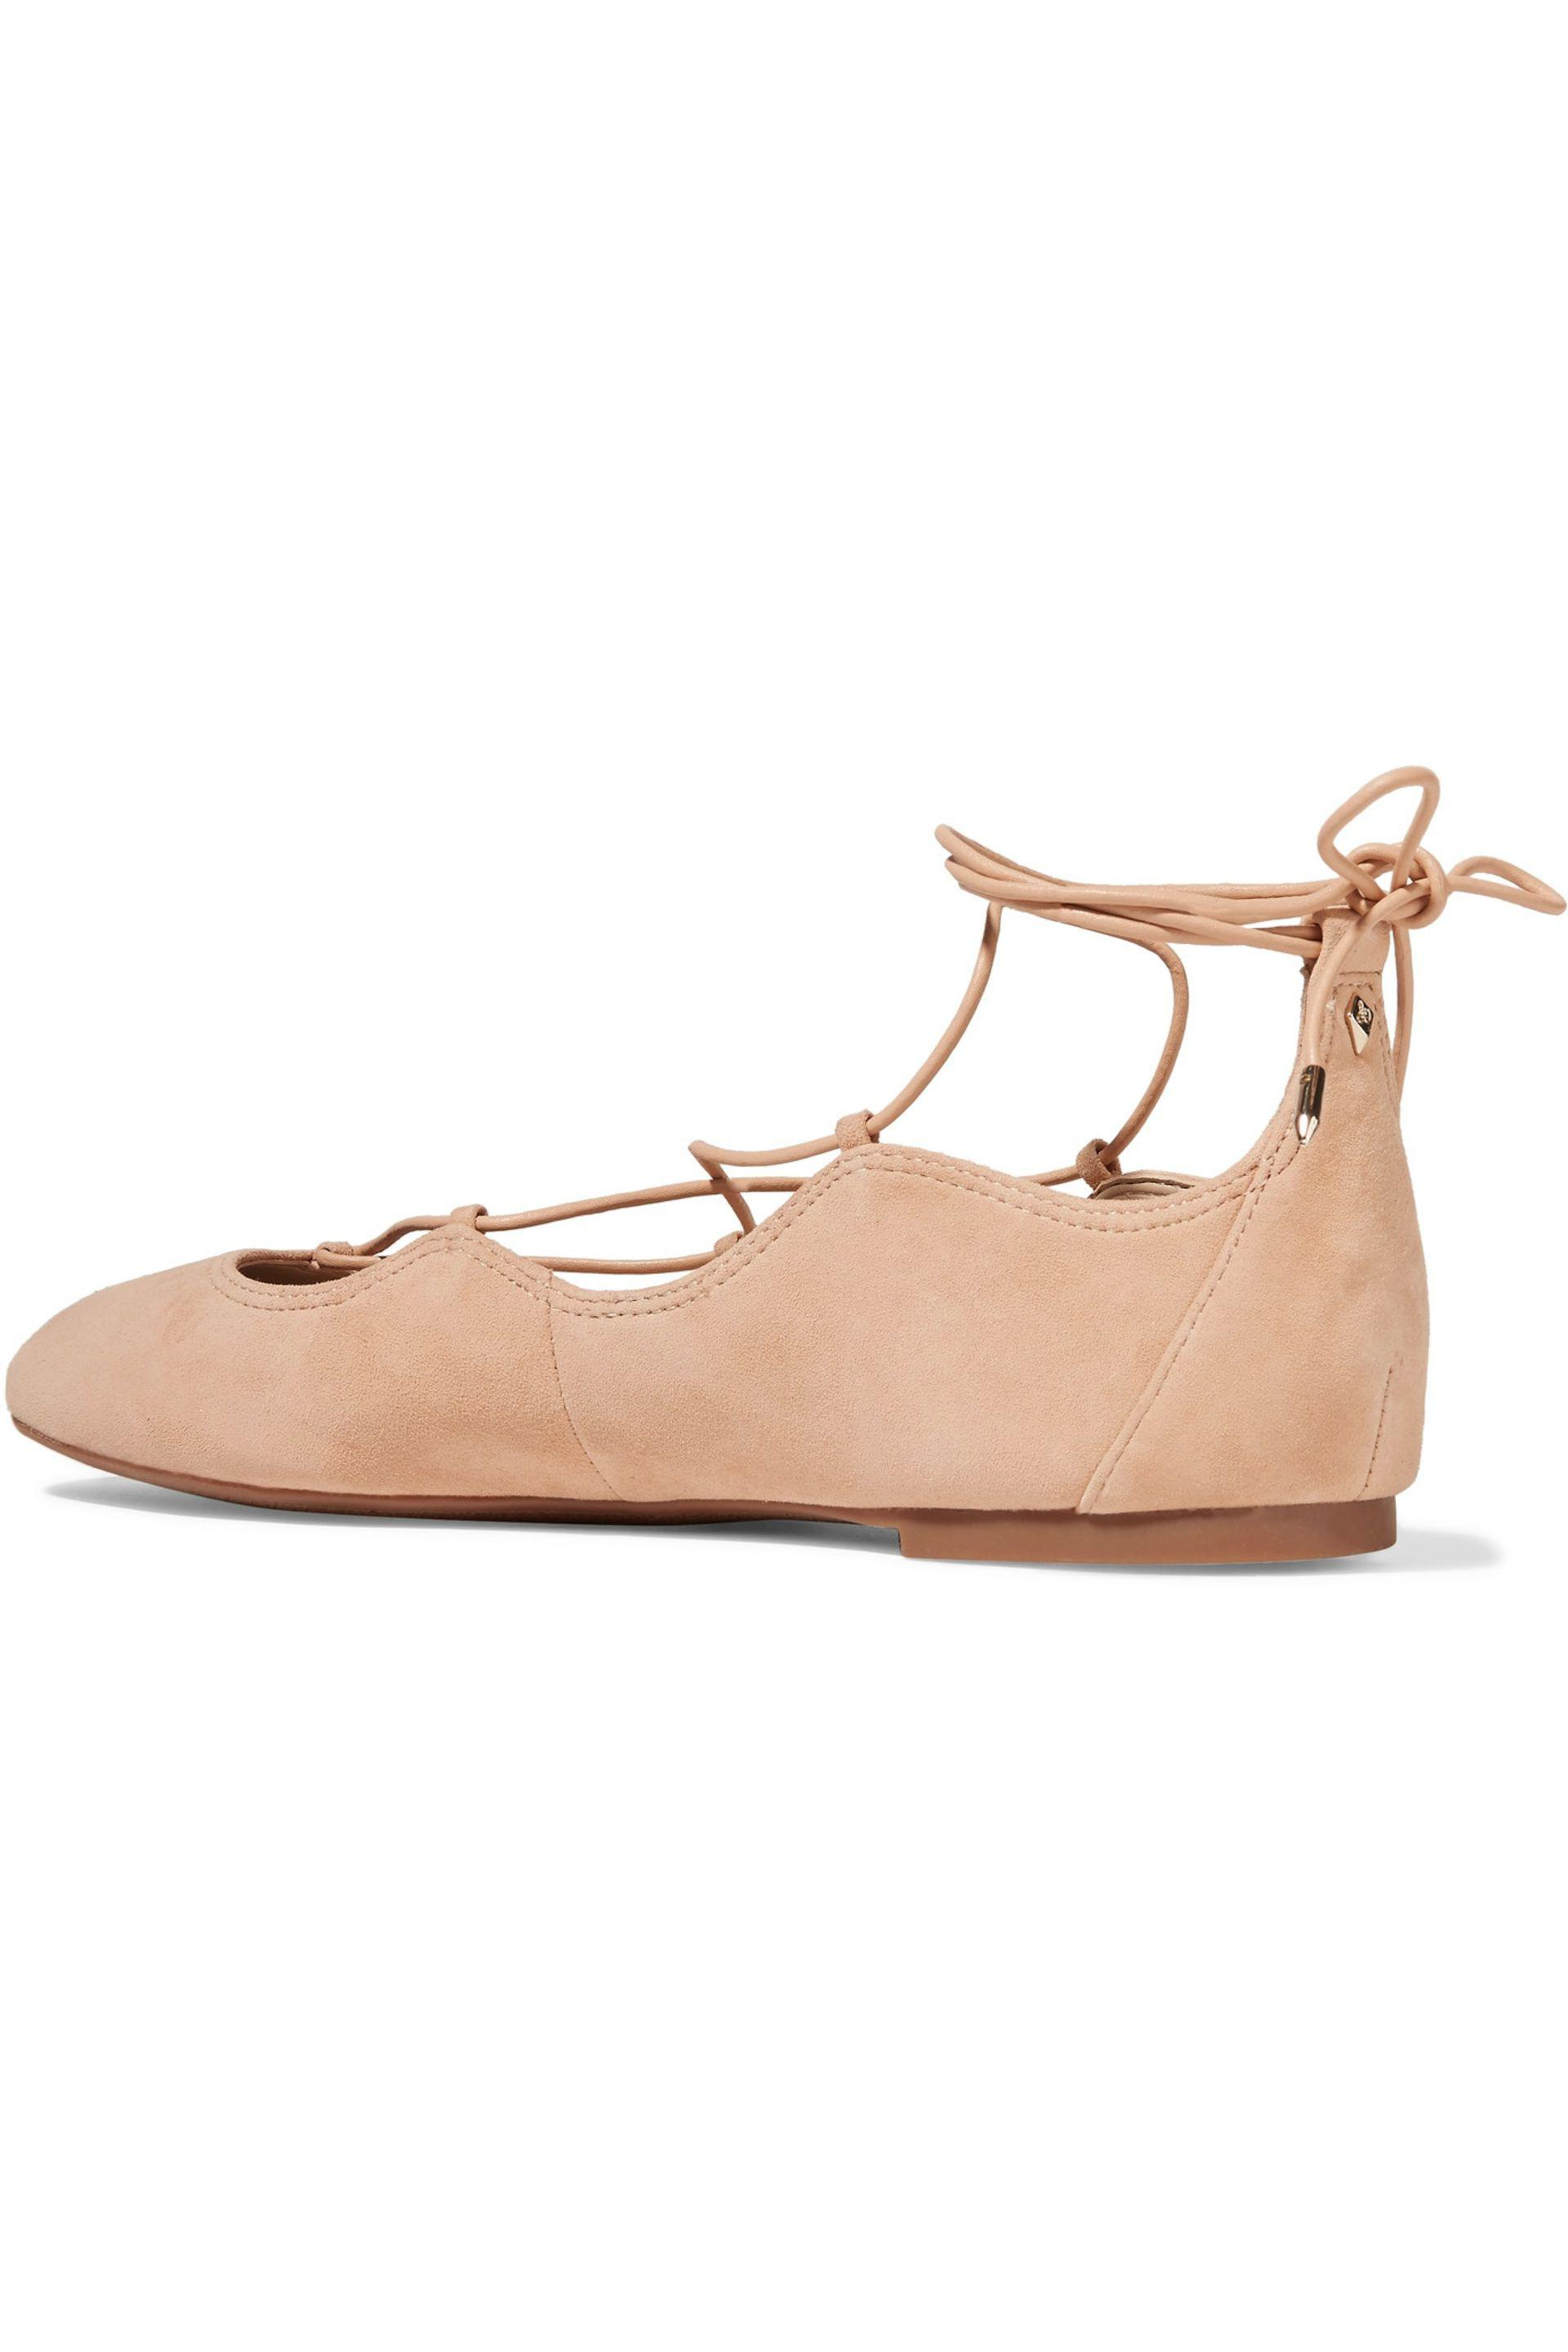 c533ab2f4d9c22 Gallery. Previously sold at  THE OUTNET.COM · Women s Lace Up Flats ...